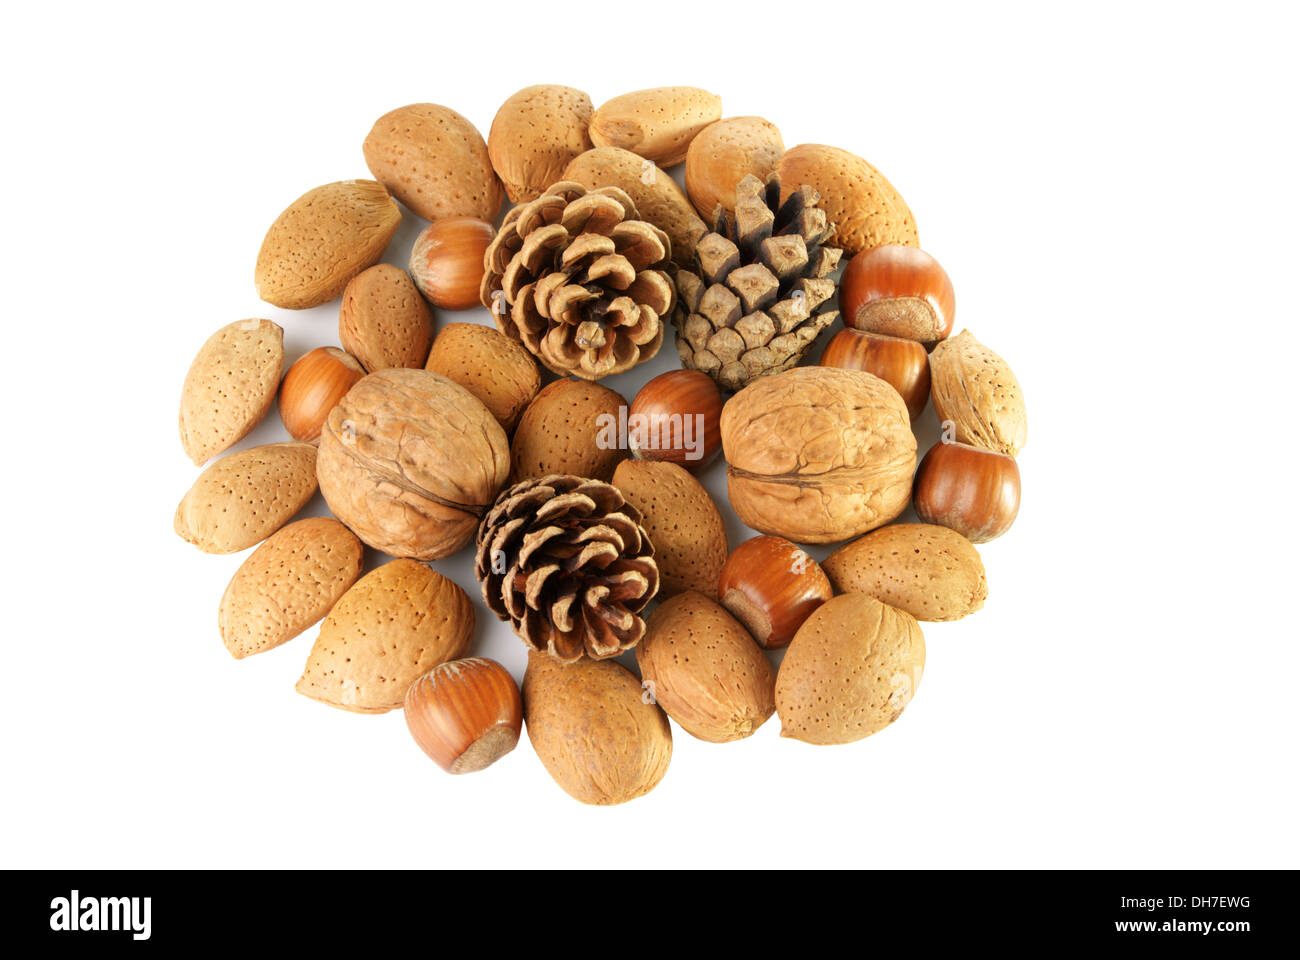 Christmas decoration with nuts and pine cones on white background - Stock Image